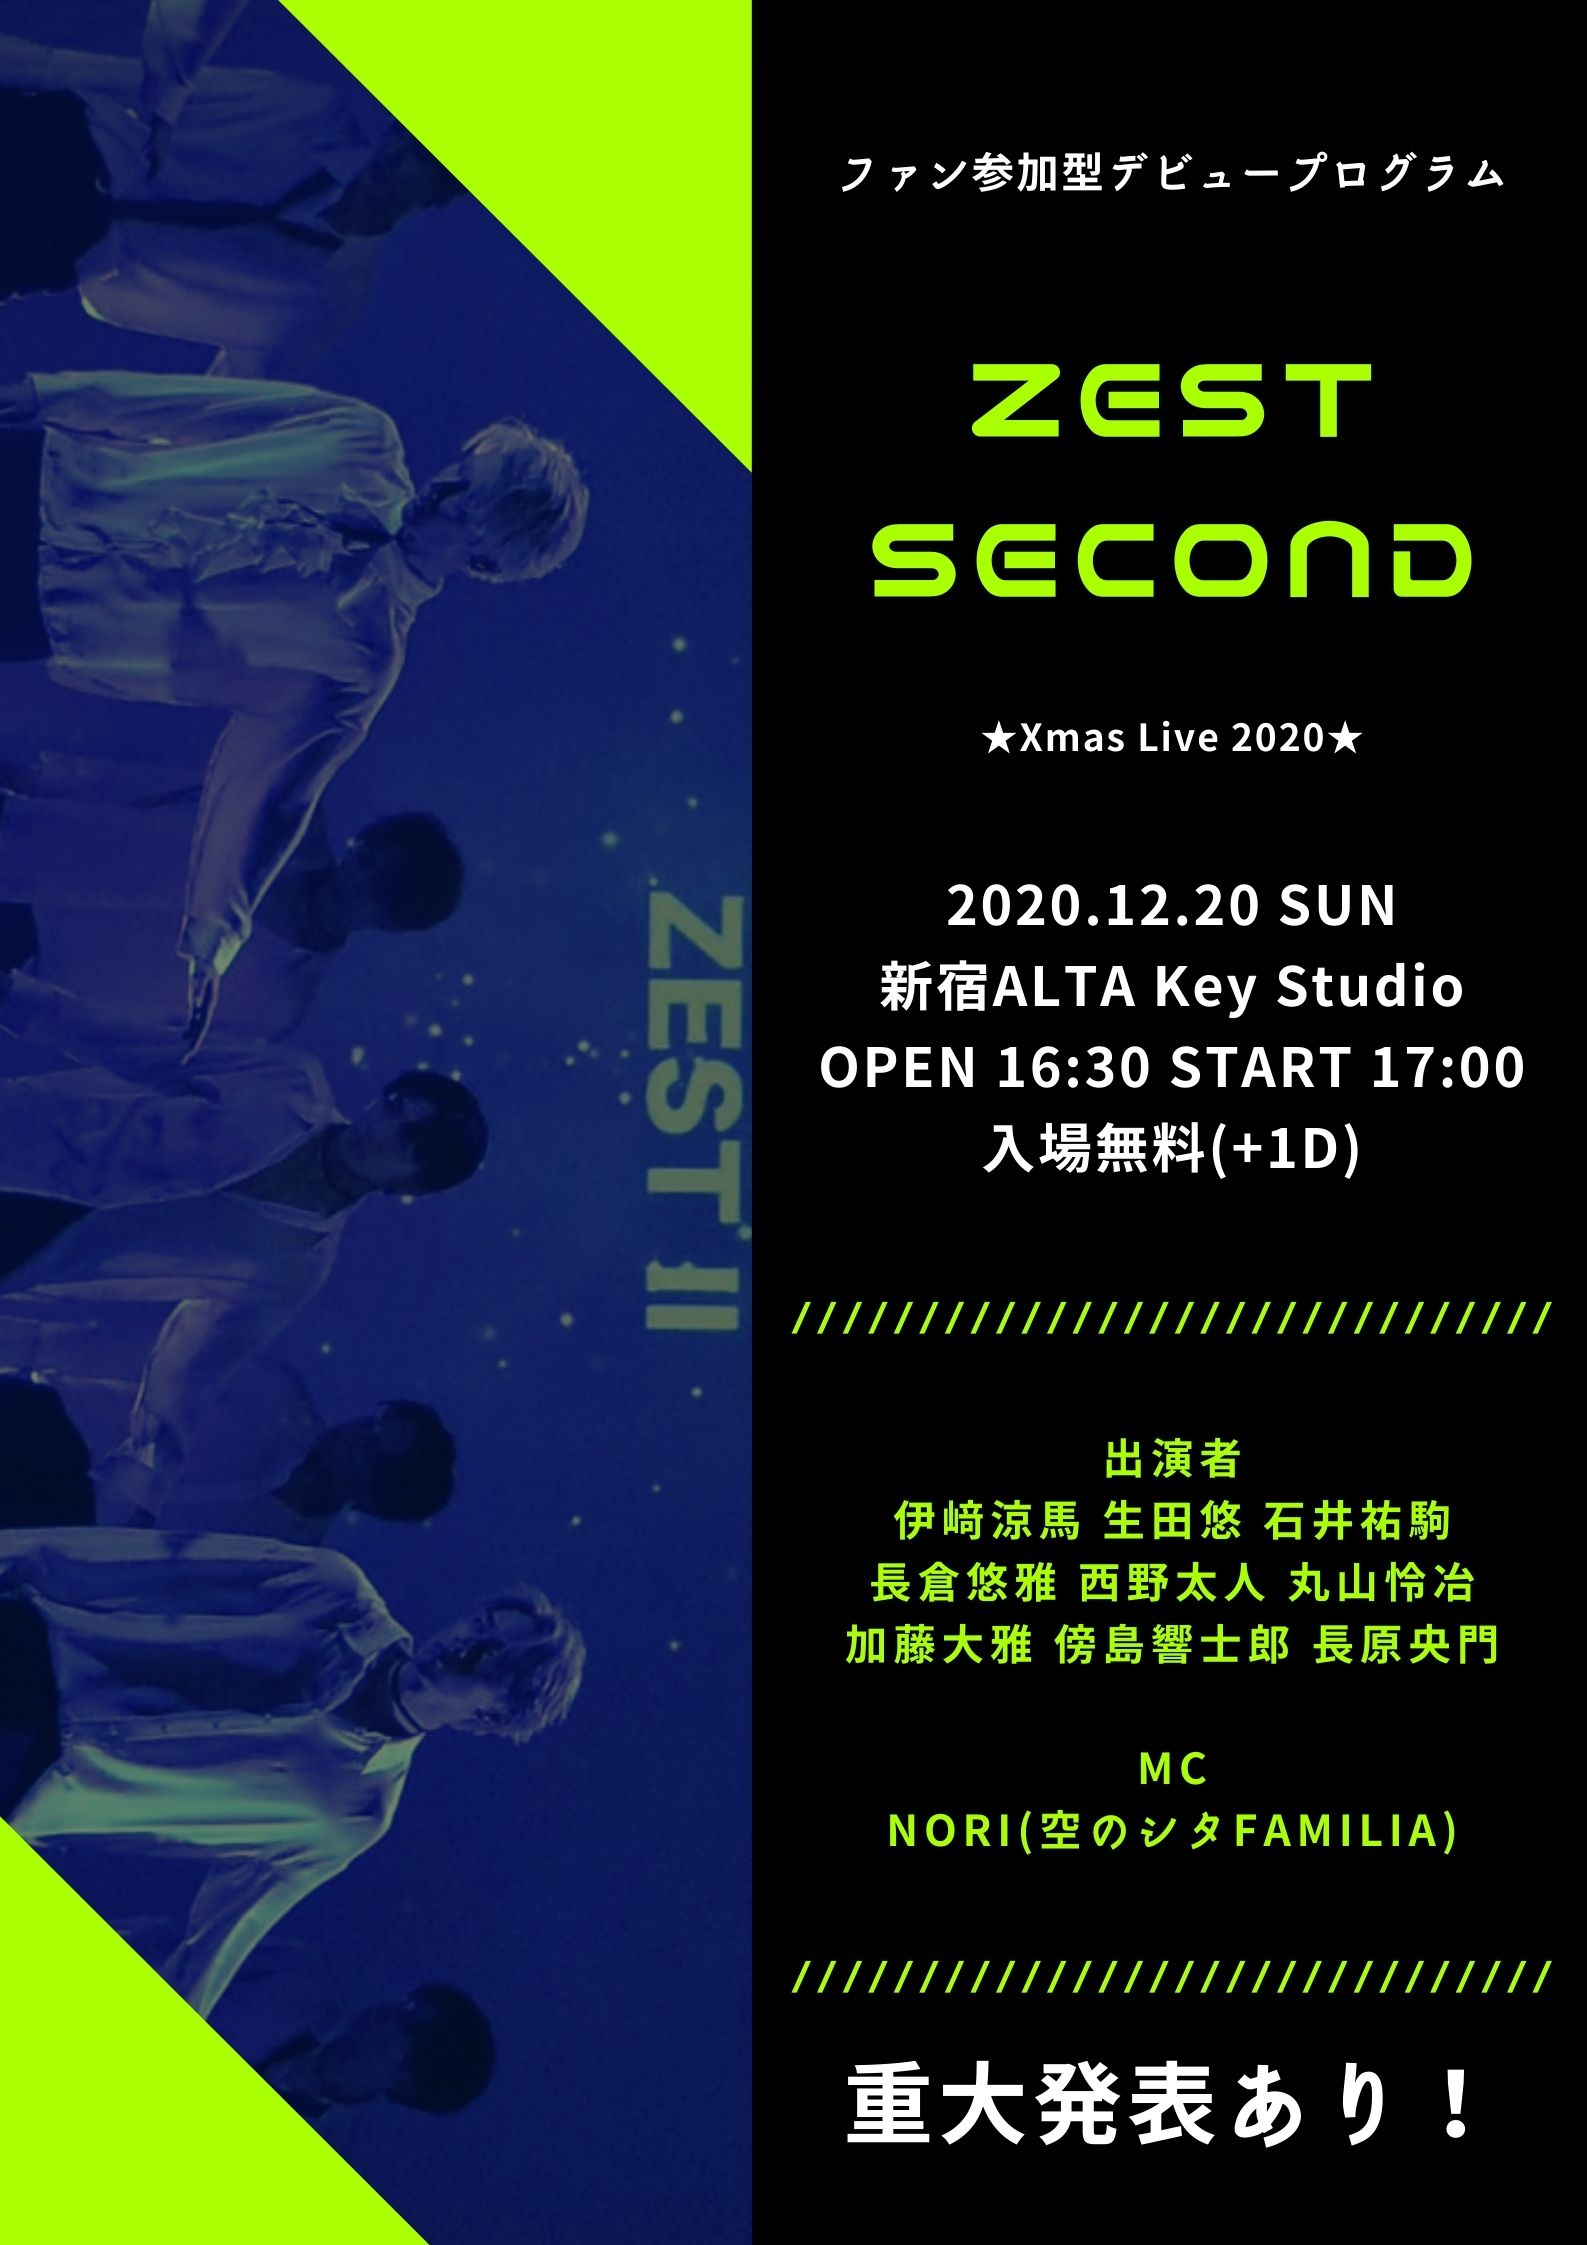 ZEST SECOND Christmas Live 2020